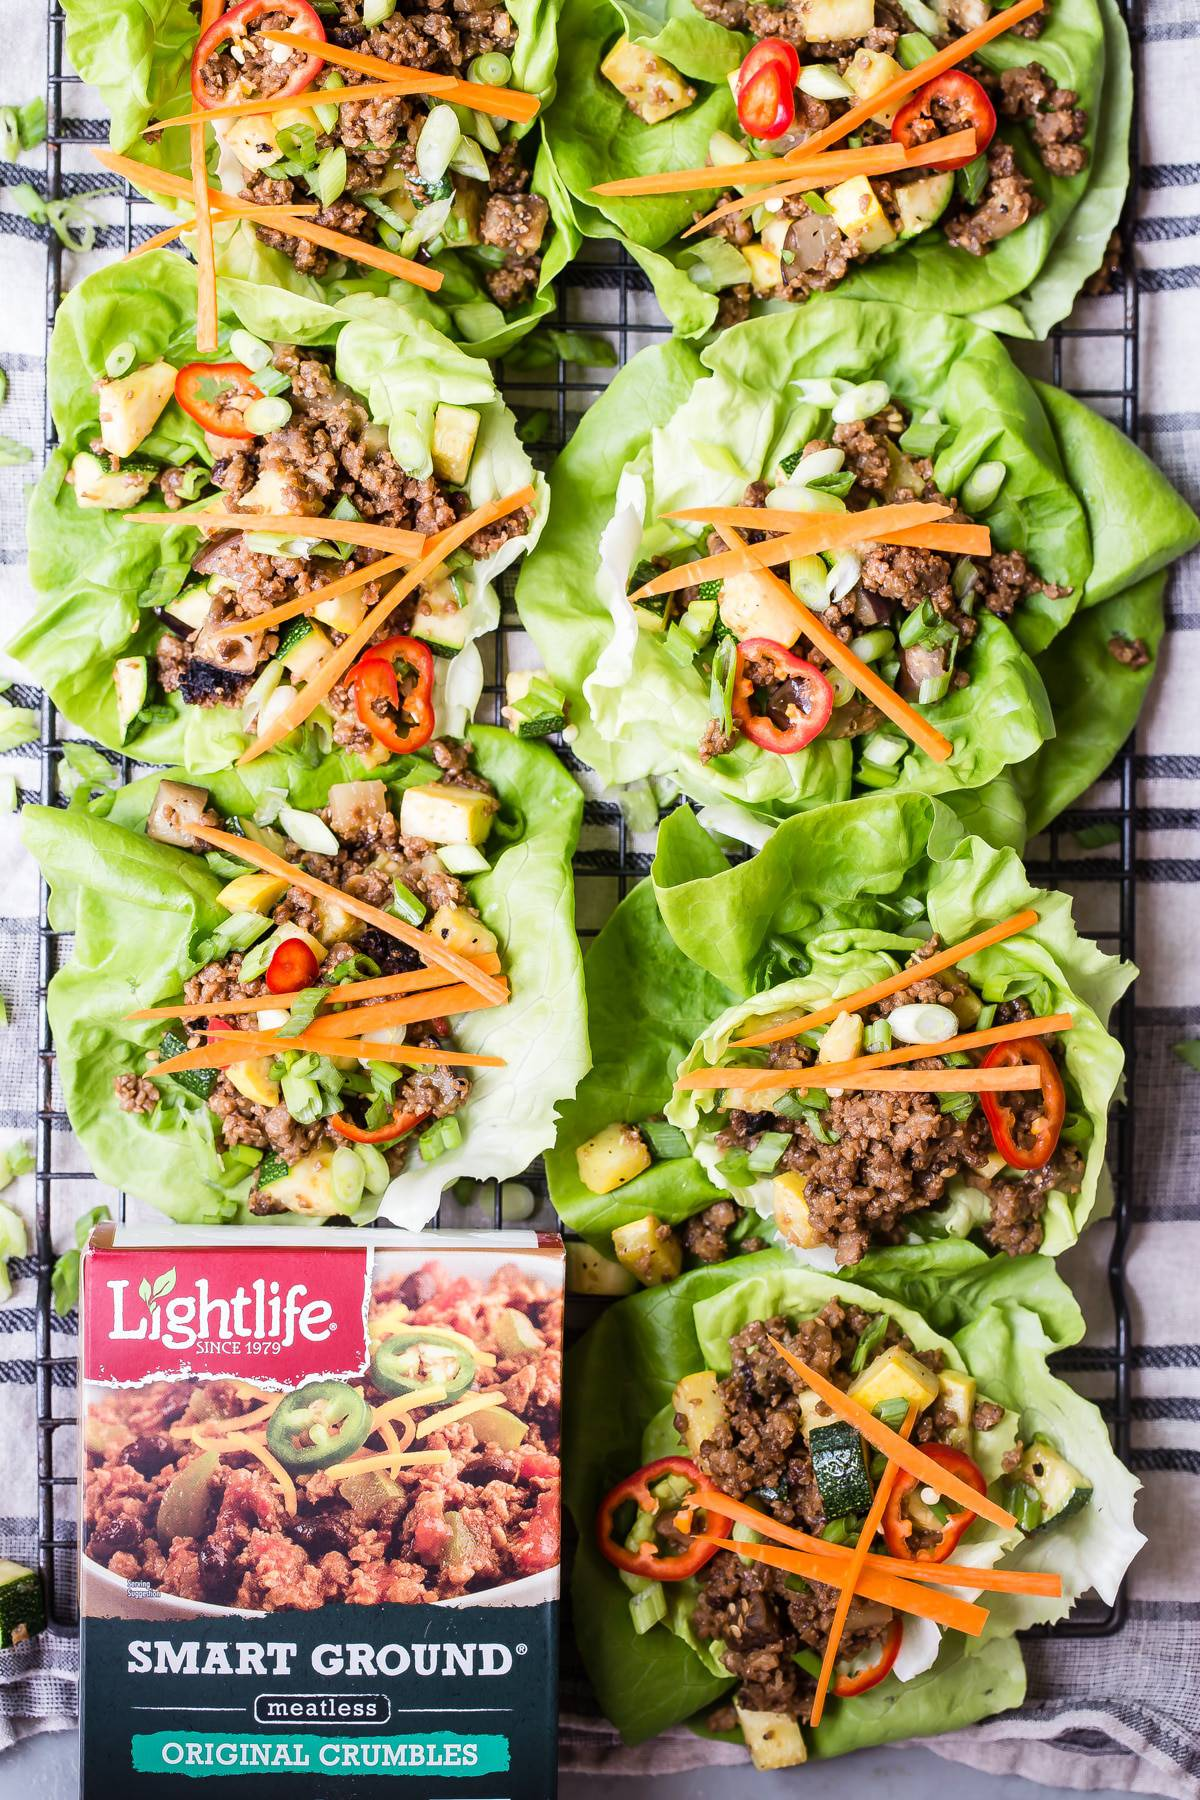 Yummy lettuce wraps and soy ginger sauce